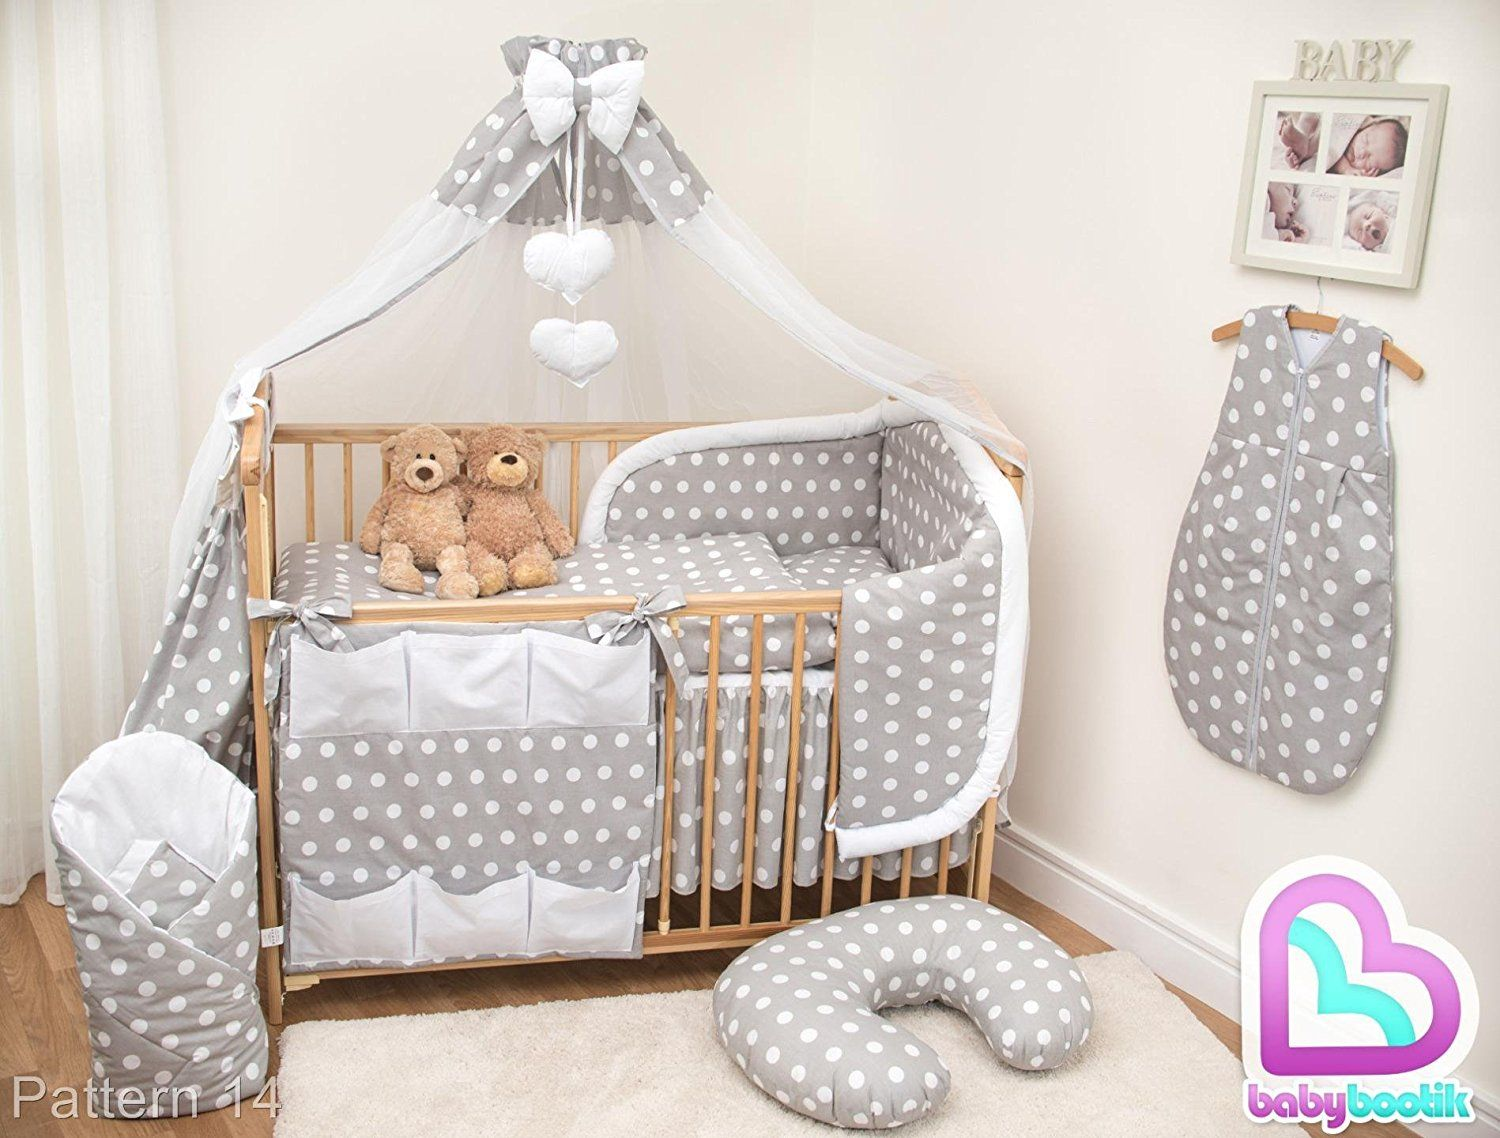 10 Piece Cot Bedding Set With Safety Padded Per Fits 120x60 Cm Pattern 14